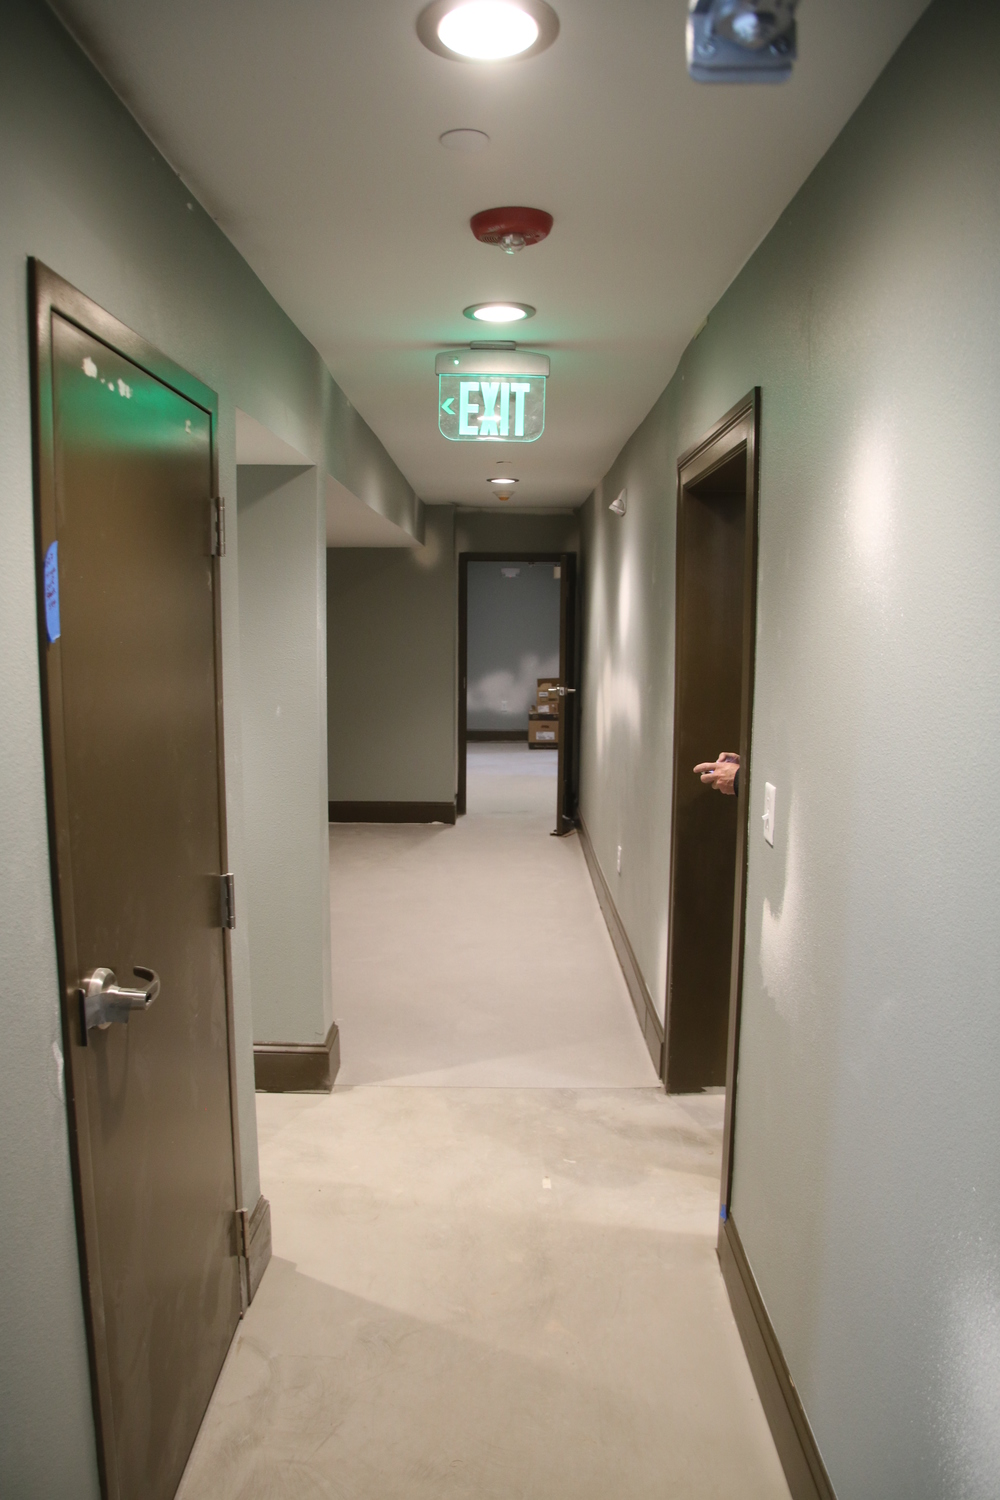 2016-03-22 basement hall looking west from Laundry.JPG